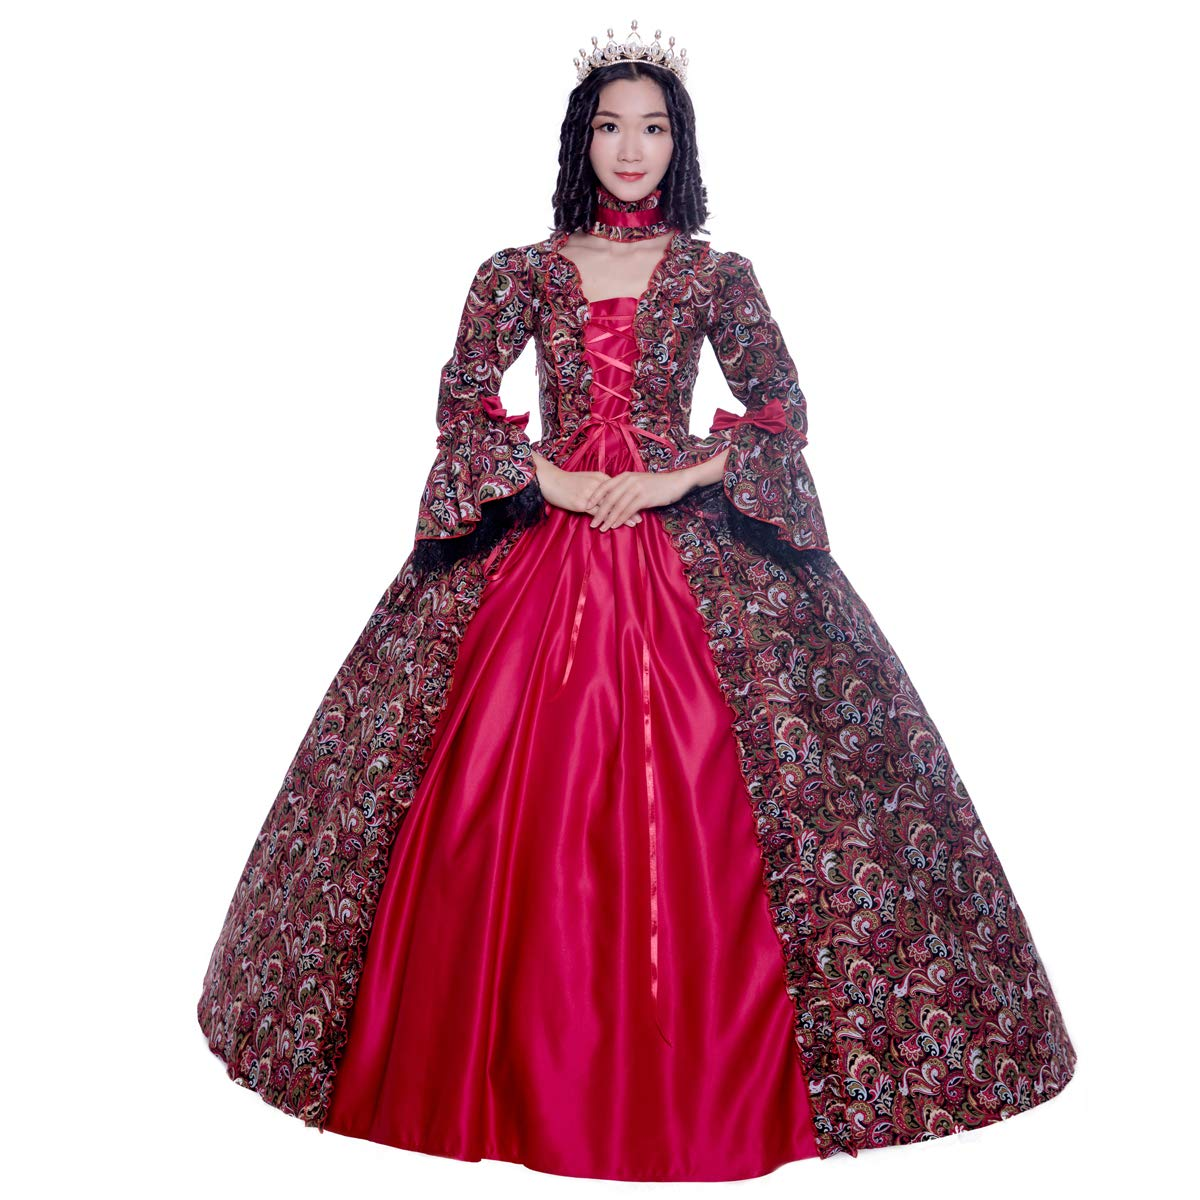 1d934360e7fb Colonial Georgian Penny Dreadful Victorian Dress Gothic Period Ball Gown  Reenactment Theater Costumes (L, Red)